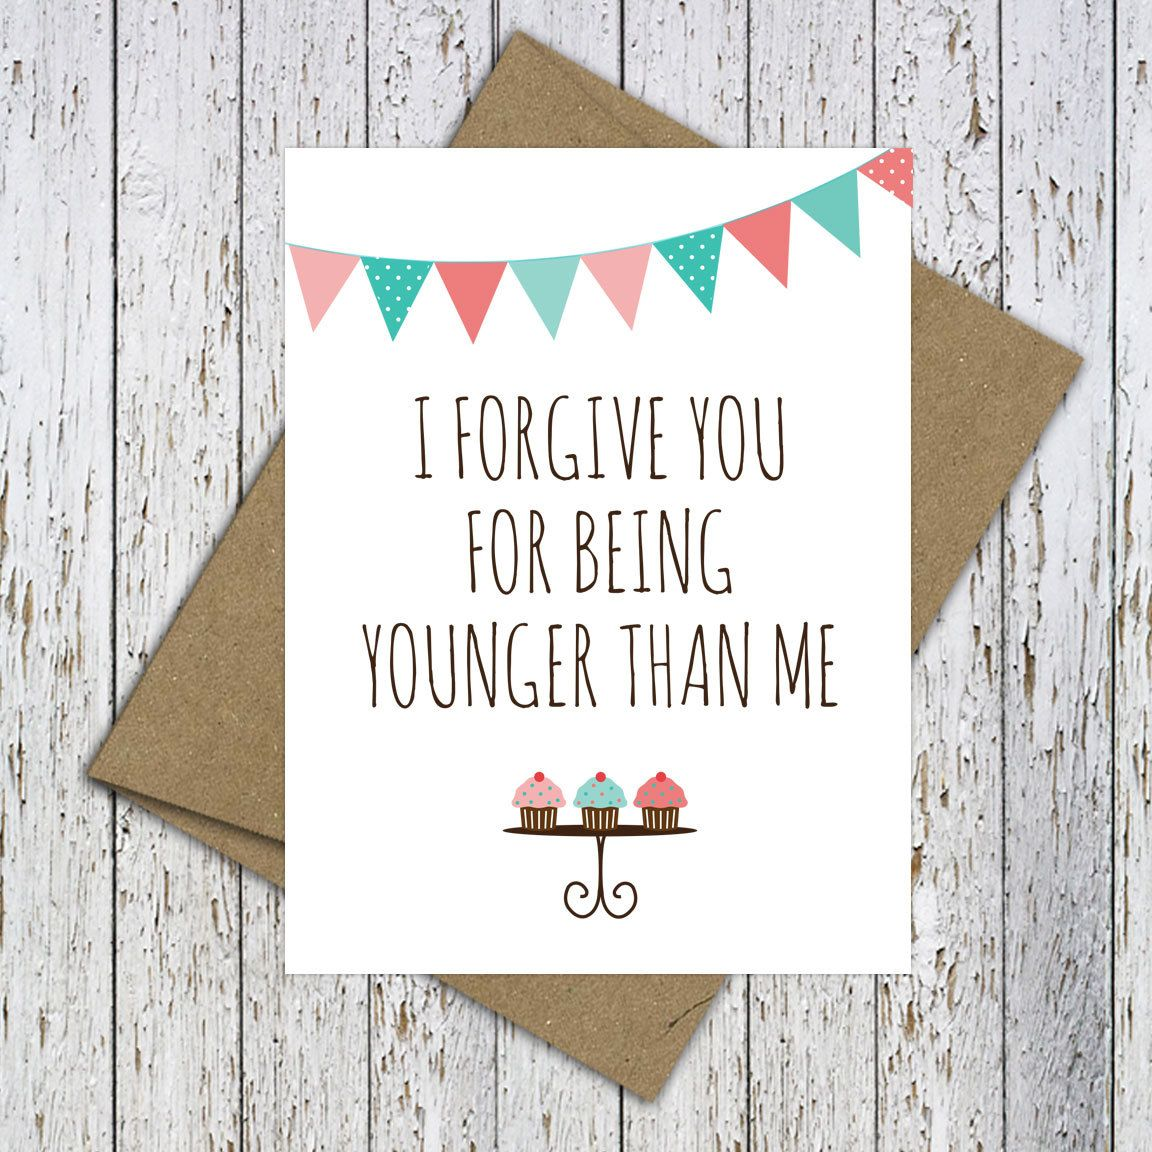 I Love You Card Boyfriend Card Awkward Card Snarky Card: Funny Birthday Card. I Forgive You For Being Younger Than